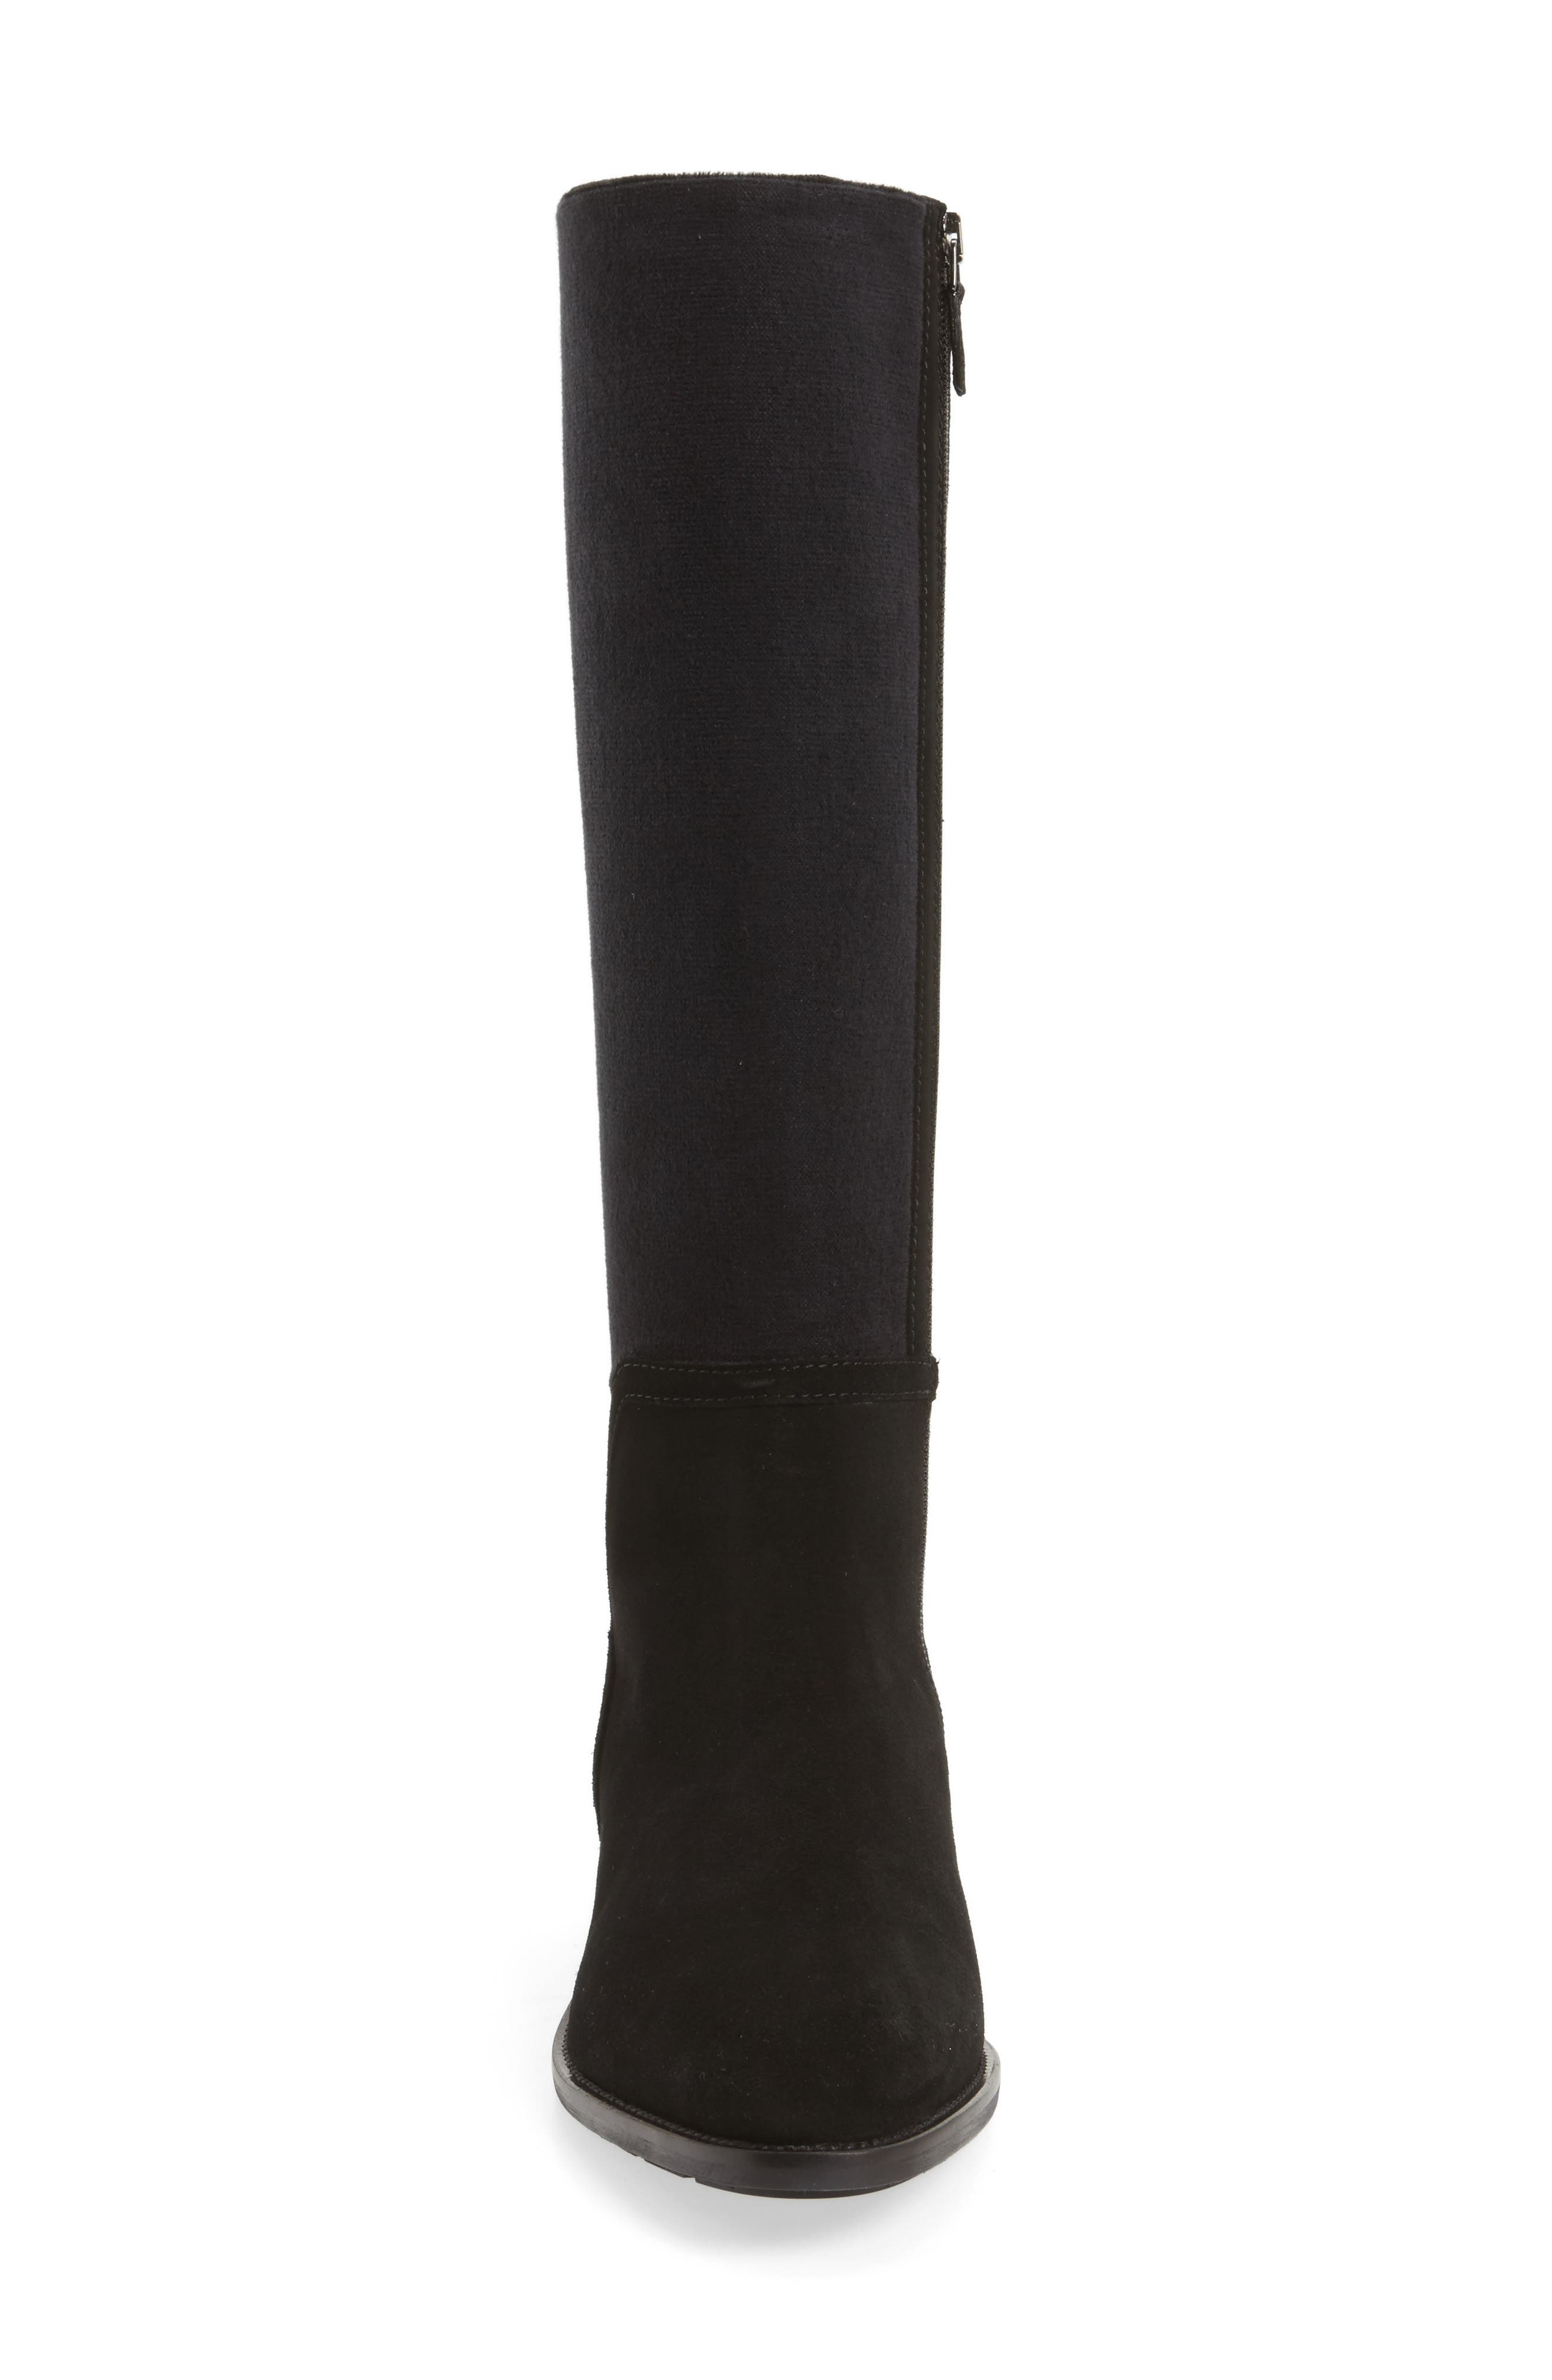 Nicolette Knee High Weatherproof Boot,                             Alternate thumbnail 4, color,                             001